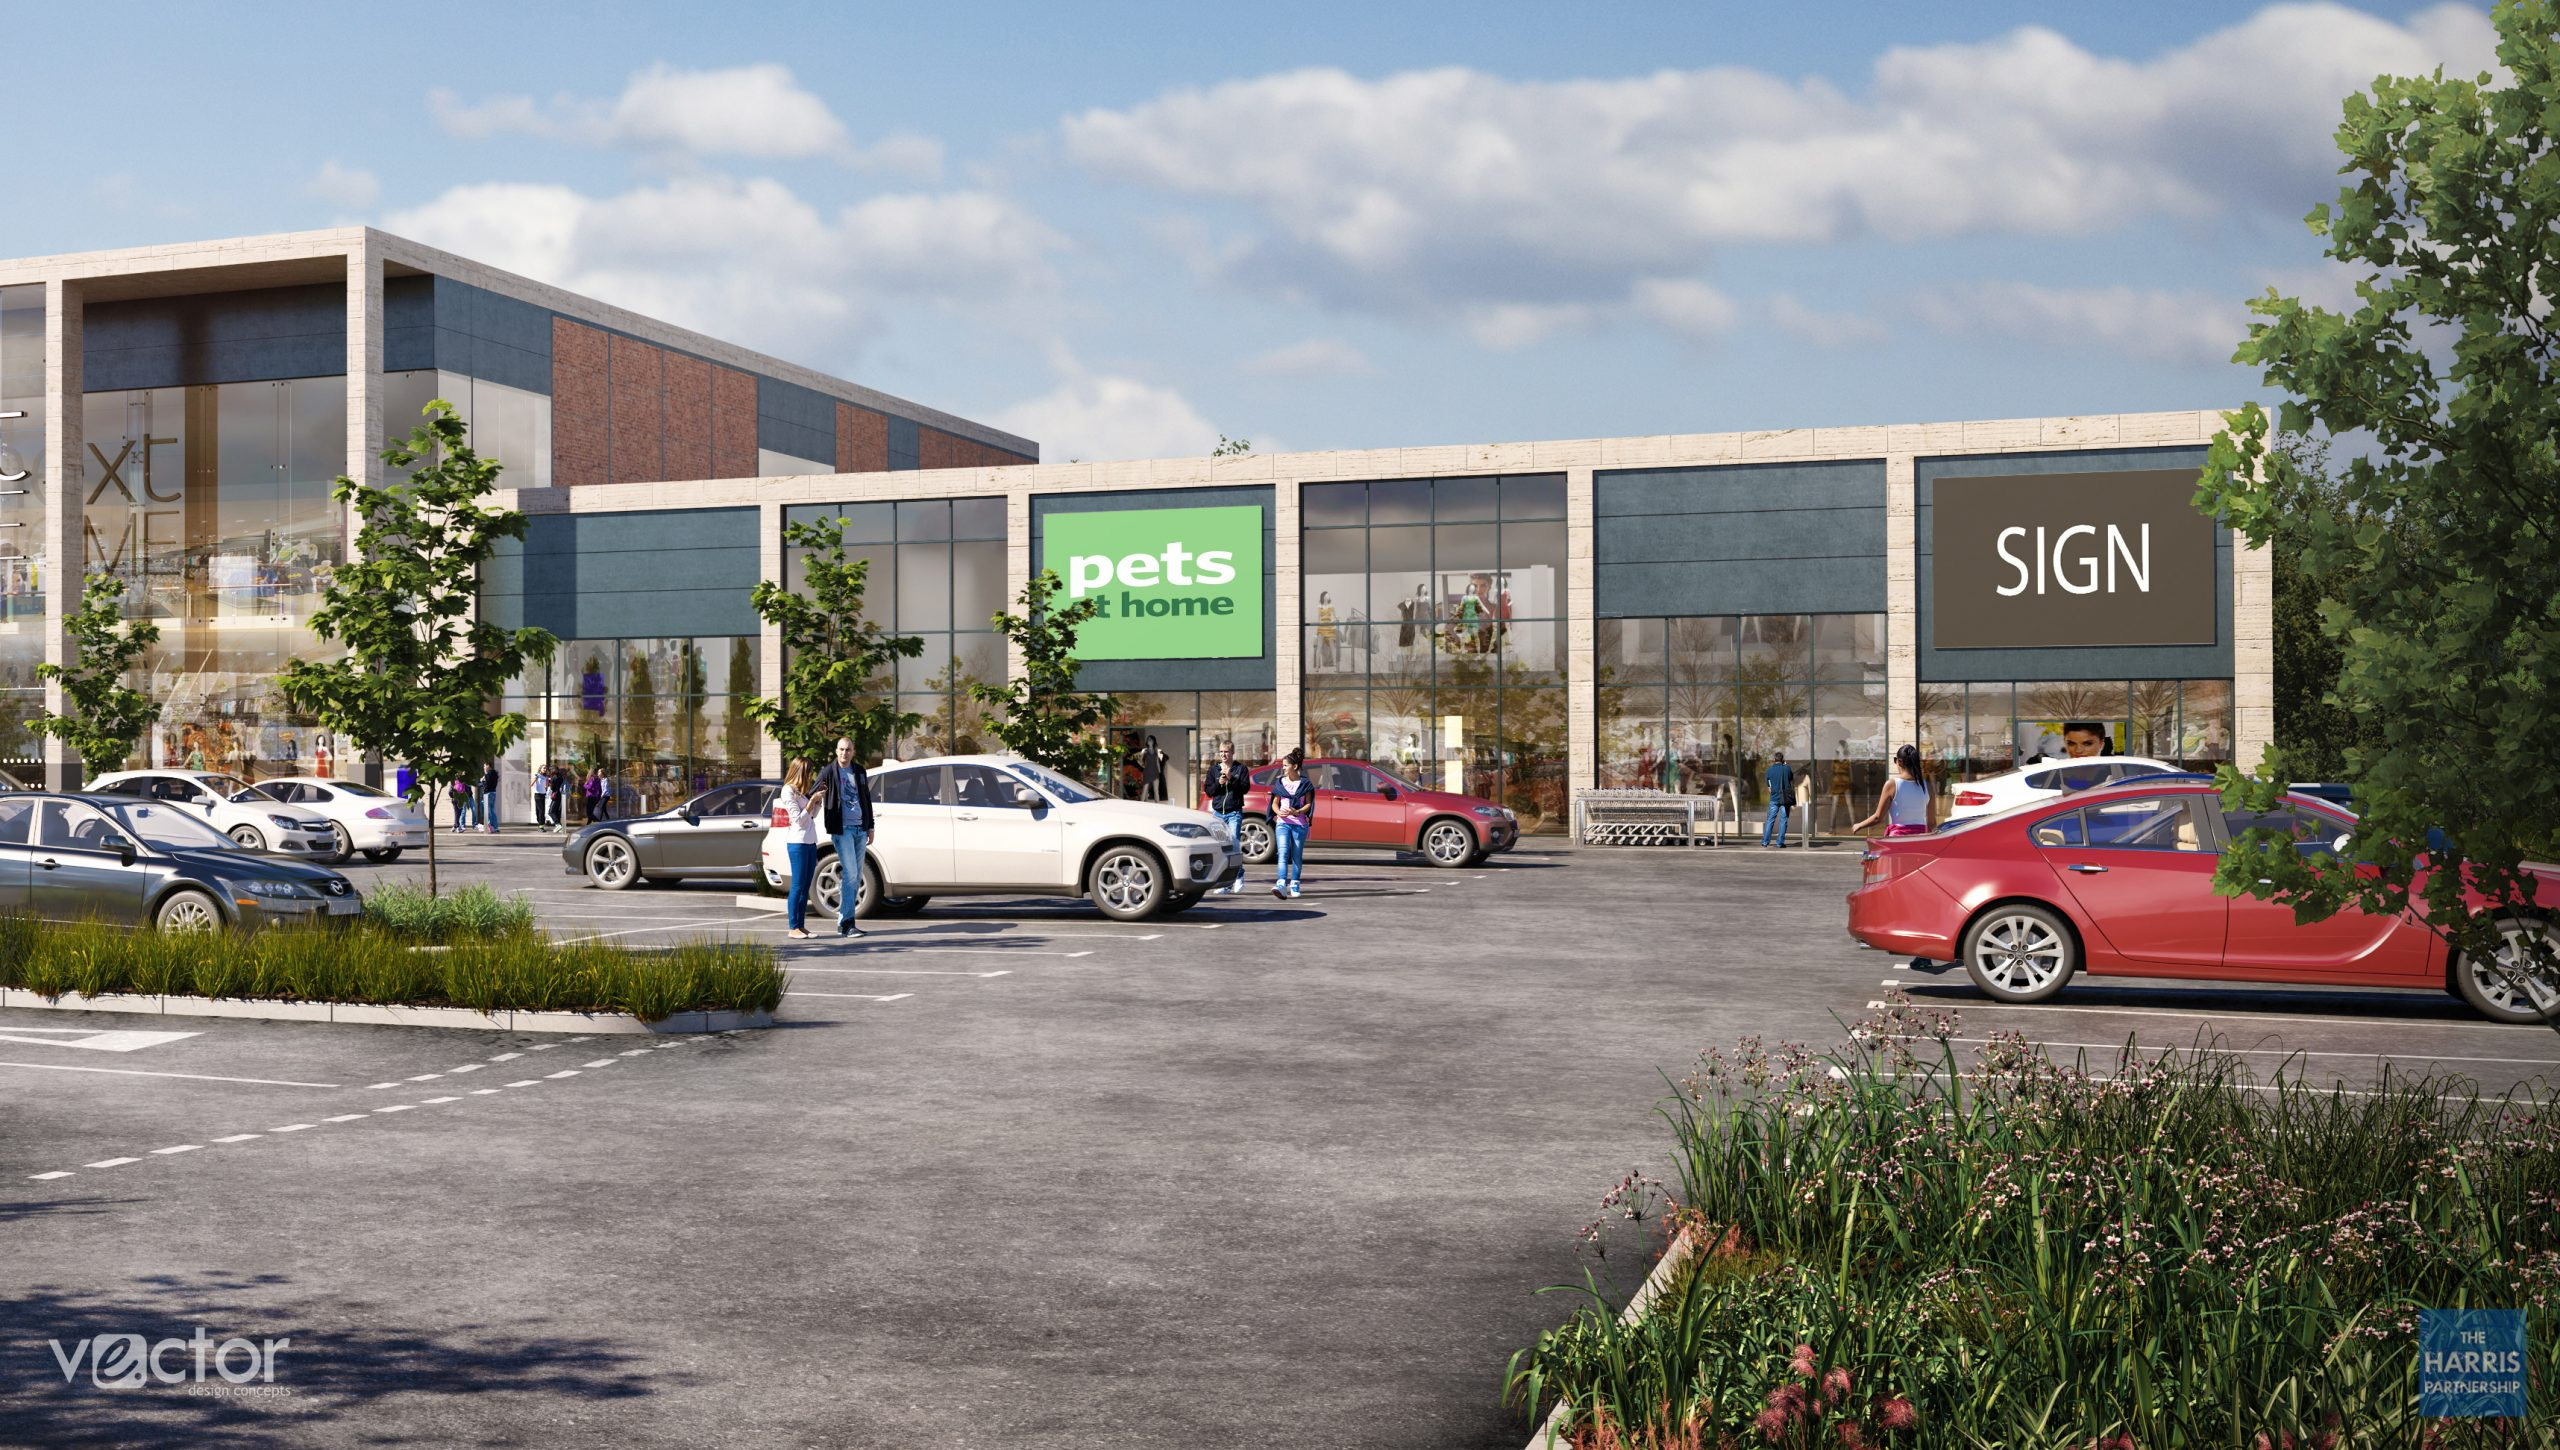 CASTLEHOUSE APPOINTED ON NEW BUILD PETS AT HOME STORE IN CHESHIRE